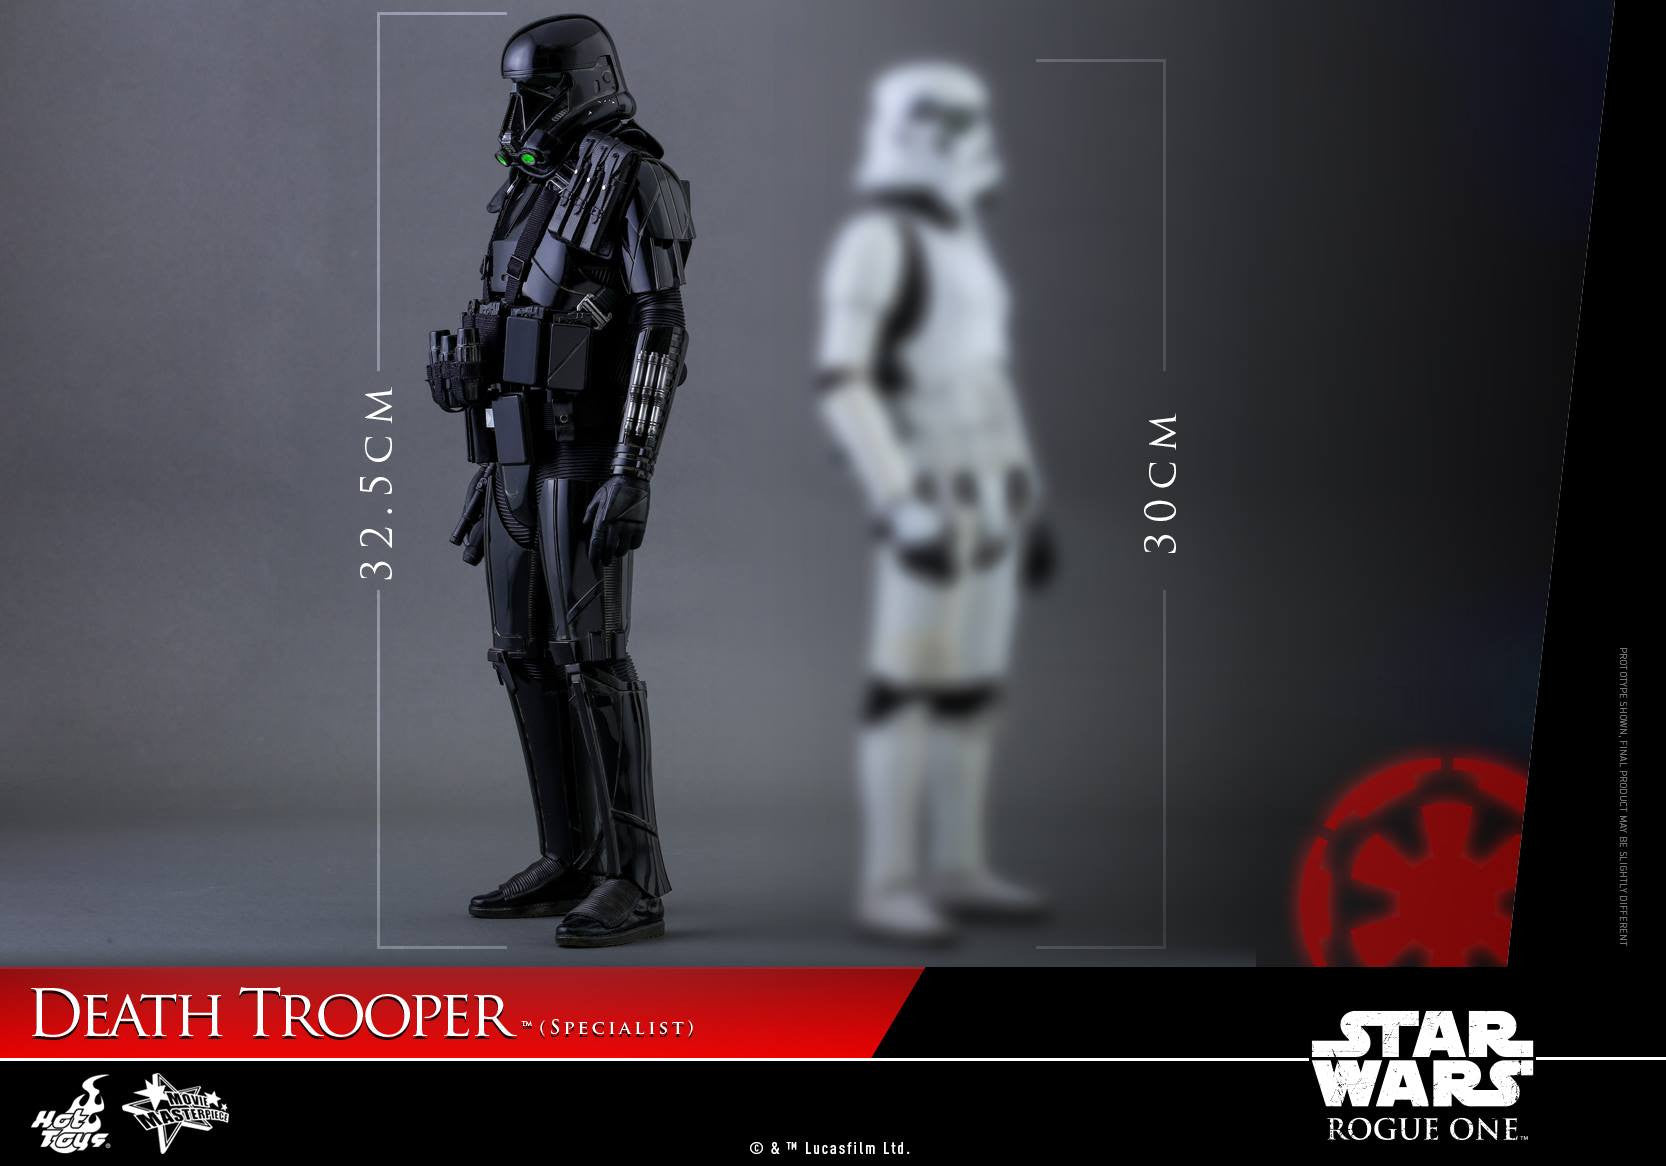 Hot Toys - MMS385 - Rogue One: A Star Wars Story - Death Trooper (Specialist) - Marvelous Toys - 21